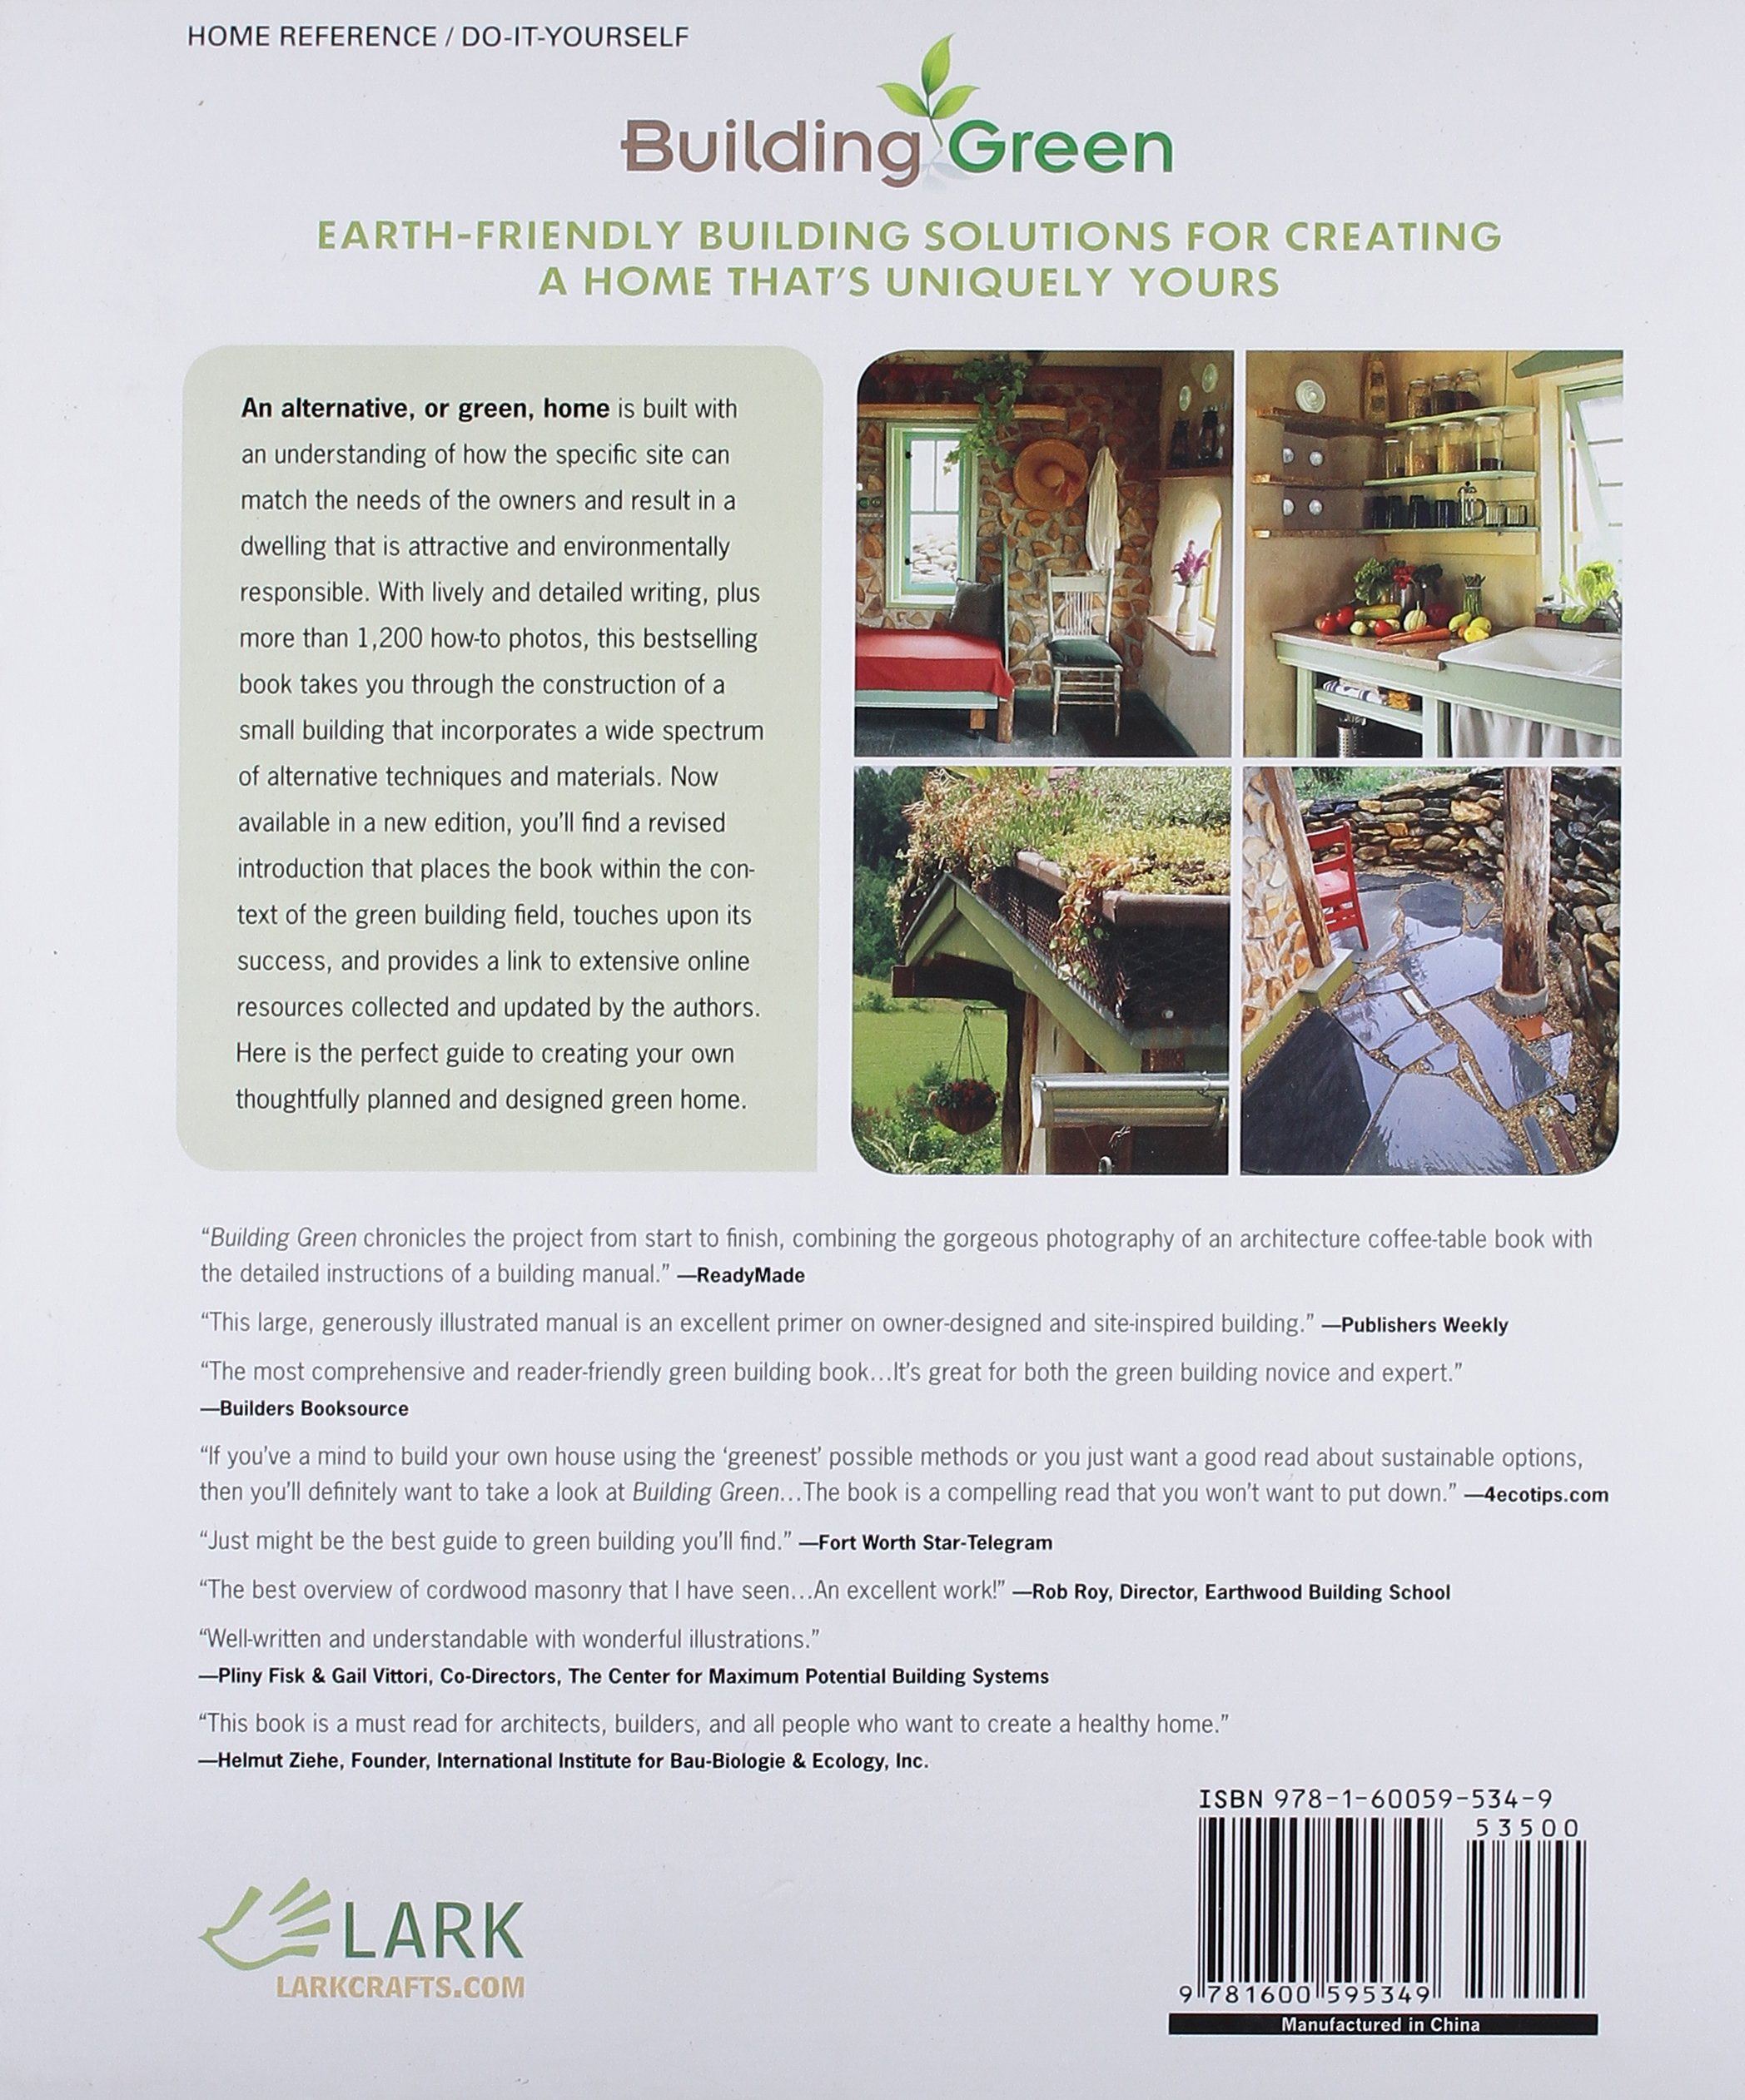 Building Green New Edition A plete How To Guide to